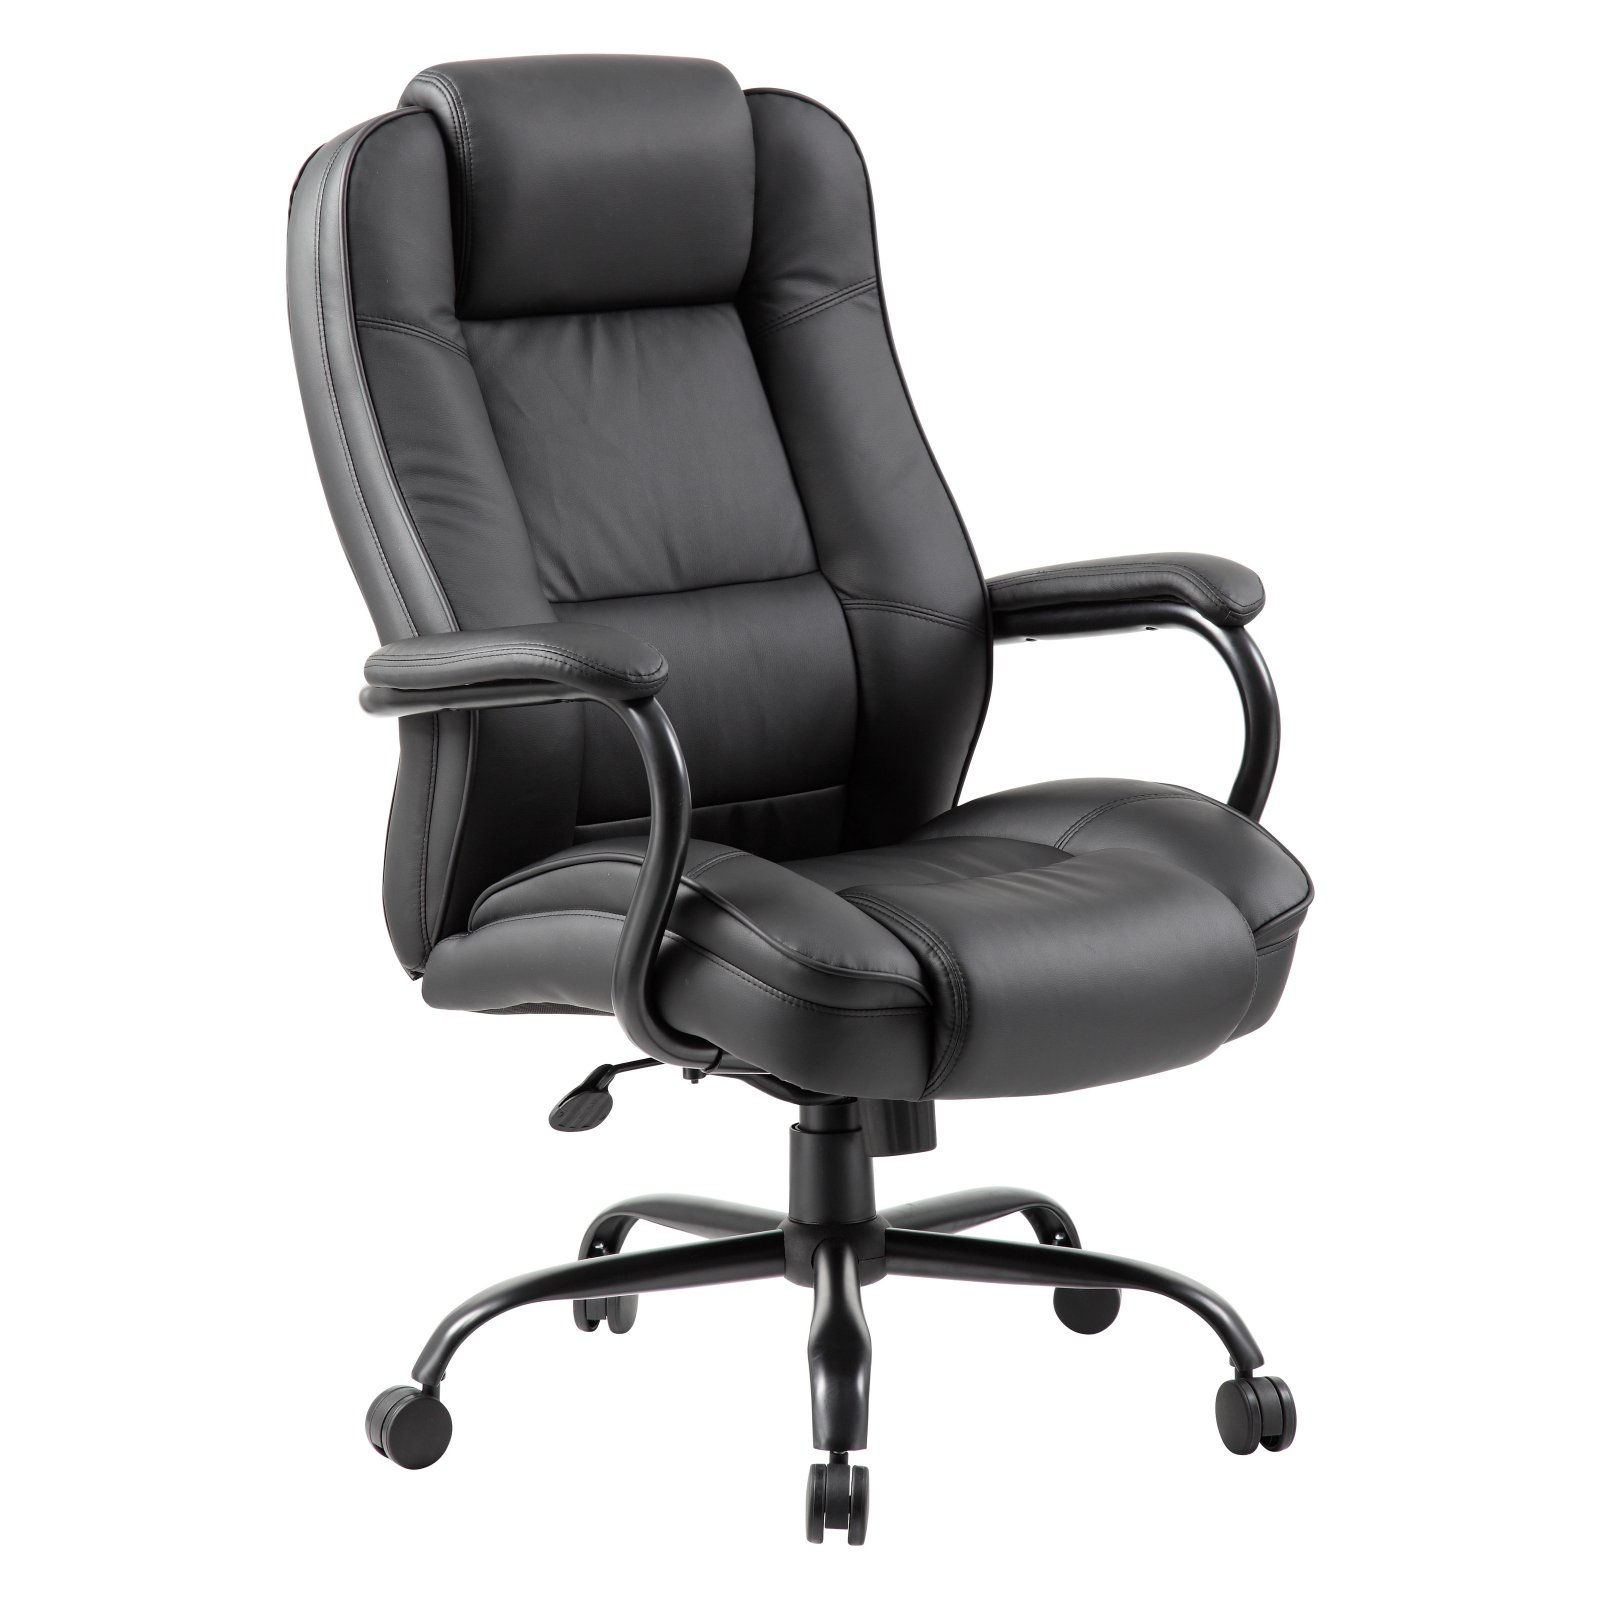 Boss Office & Home Black Big and Tall Executive Office Chair